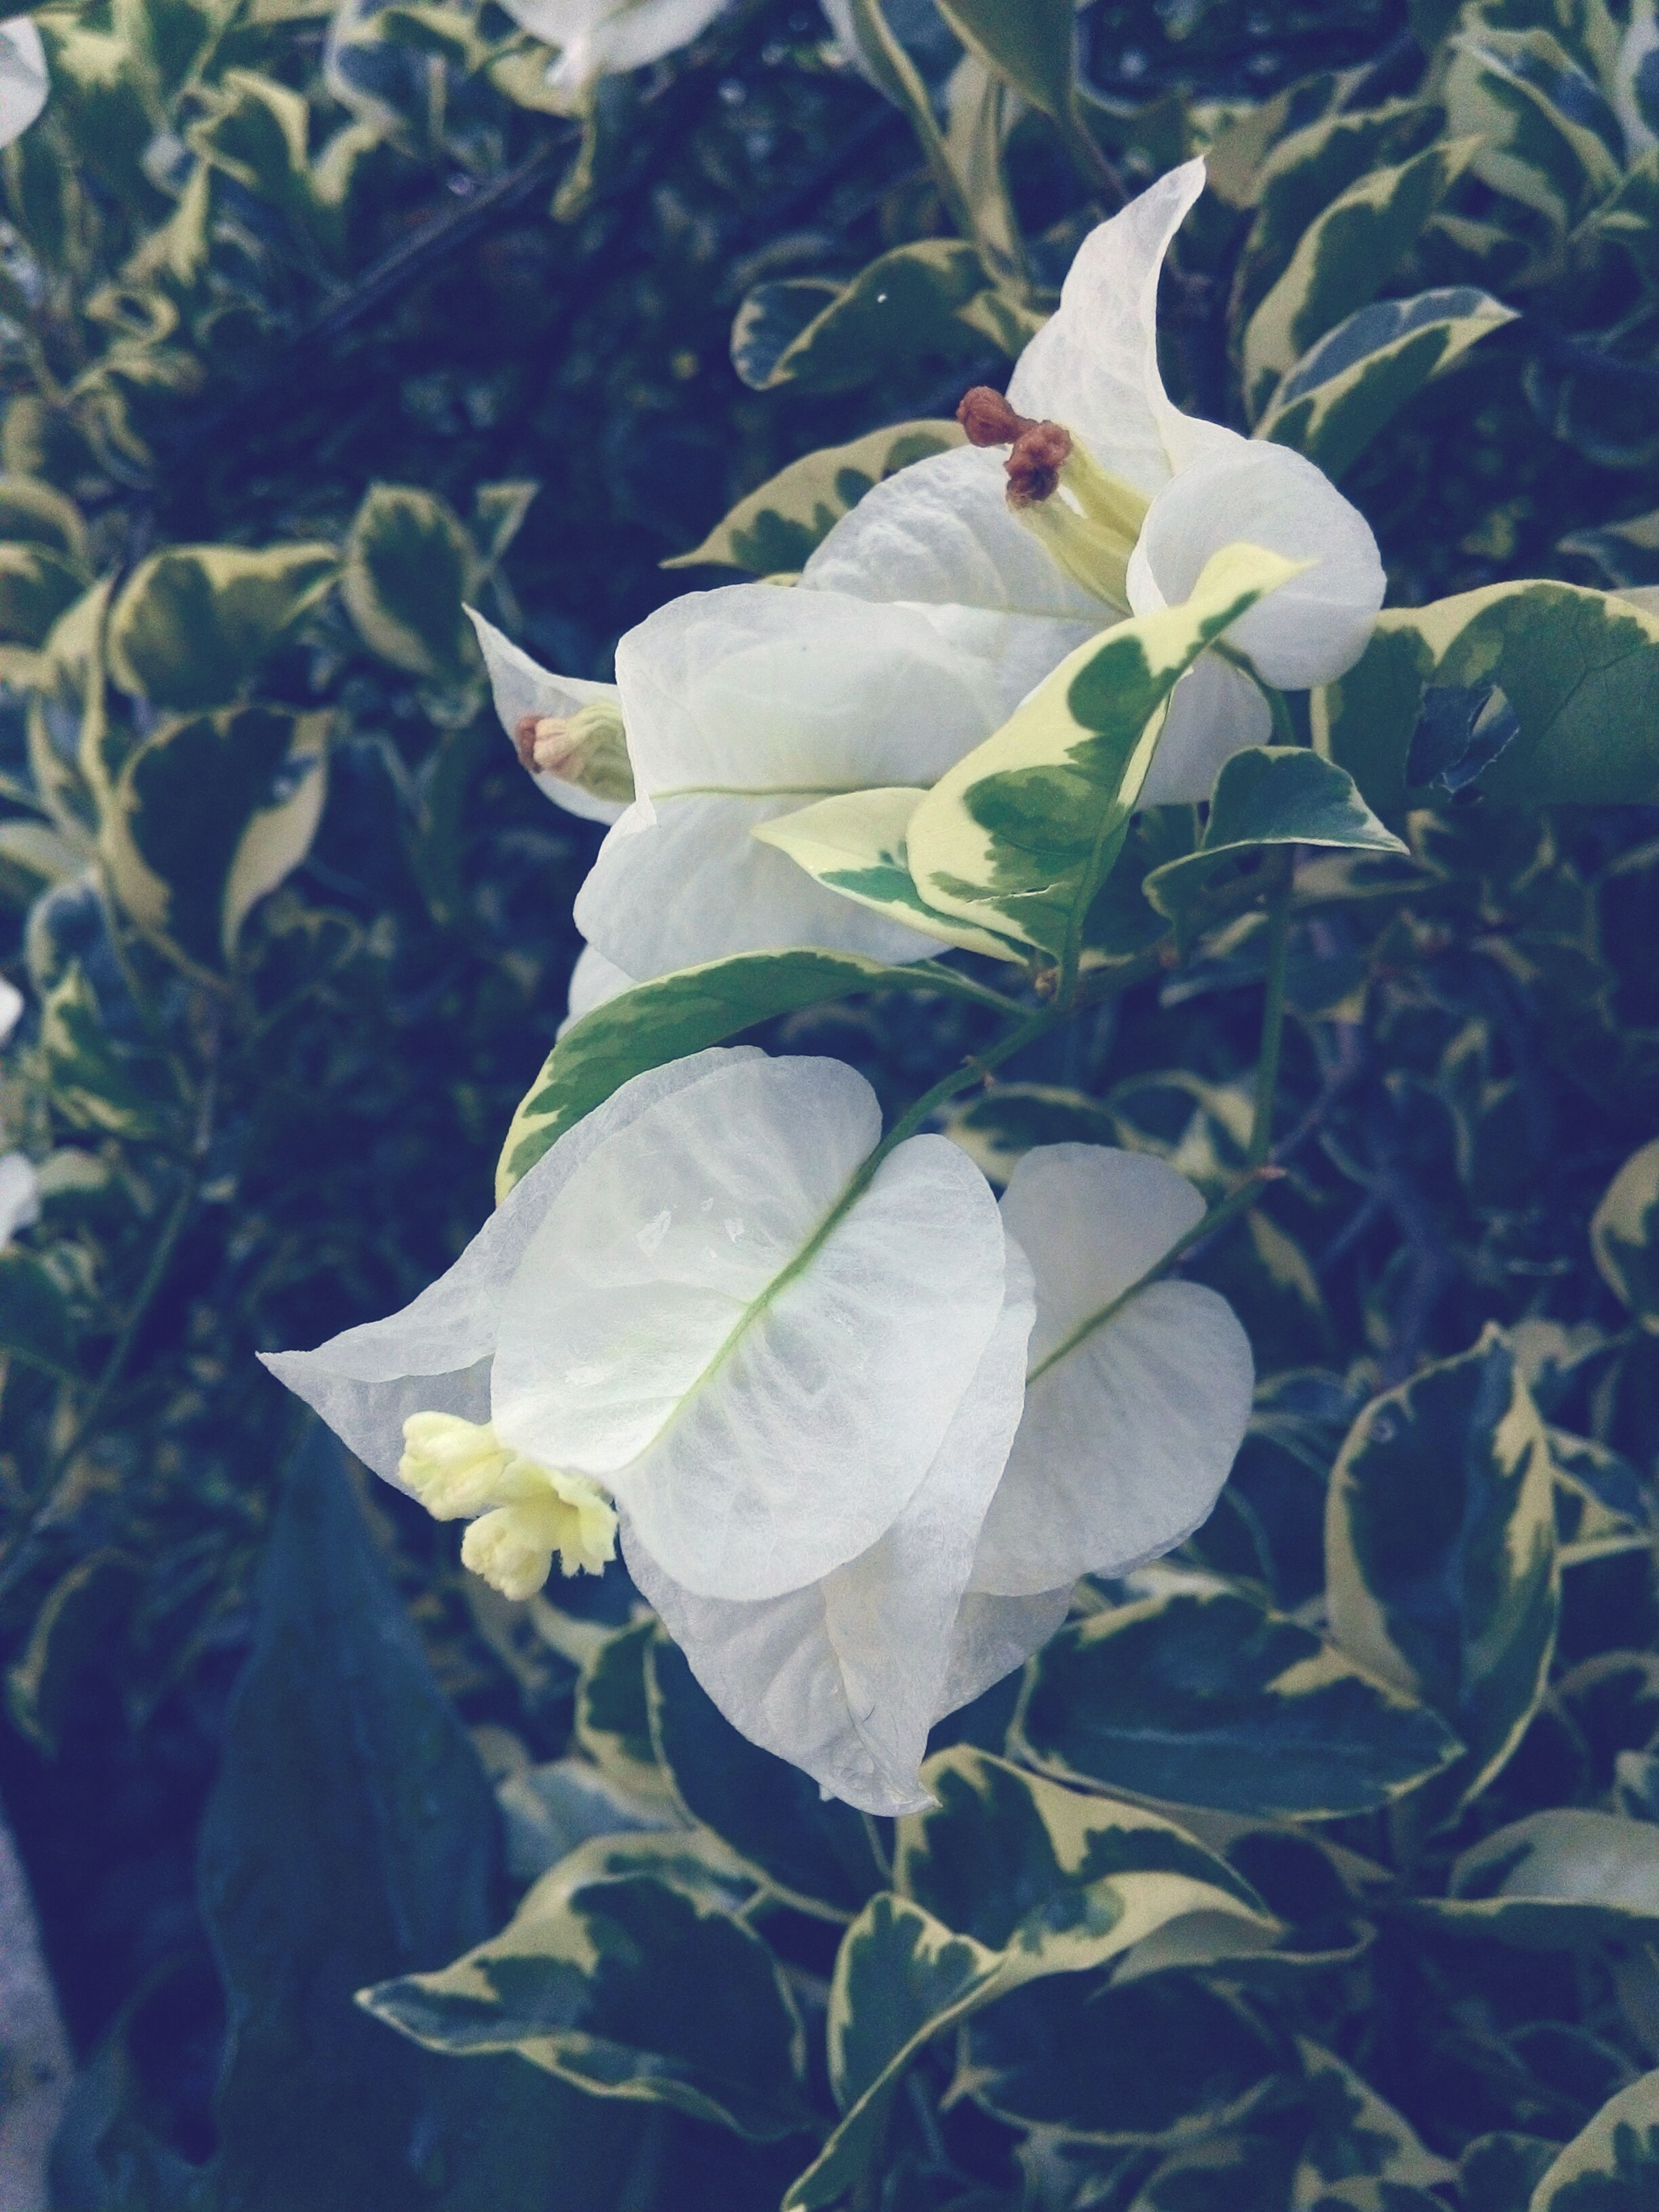 leaf, growth, plant, freshness, close-up, green color, flower, nature, fragility, beauty in nature, focus on foreground, day, no people, yellow, outdoors, petal, growing, bud, blooming, sunlight